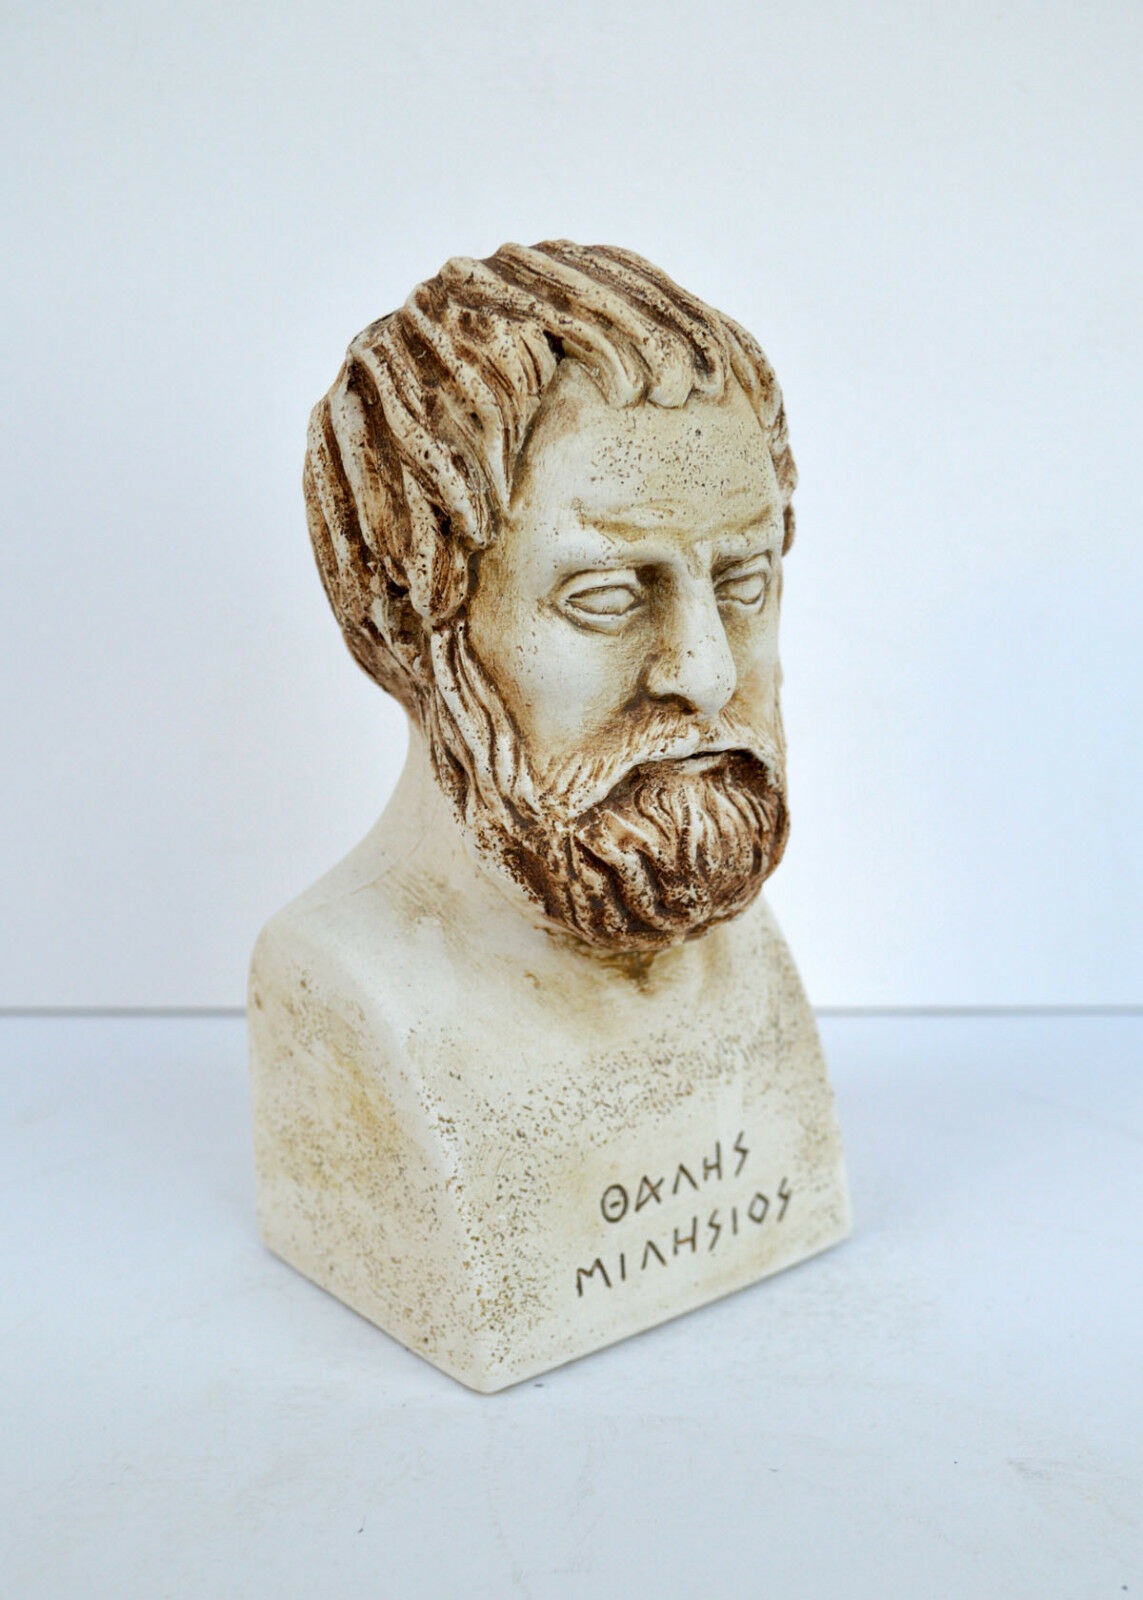 thales of miletus atomic model Thales of miletus (c 624 - 546 bc) was an early pre-socratic philosopher, mathematician and astronomer from the greek city of miletus in ionia (modern-day turkey) he was one of the so-called seven sages of greece , and many regard him as the first philosopher in the western tradition.